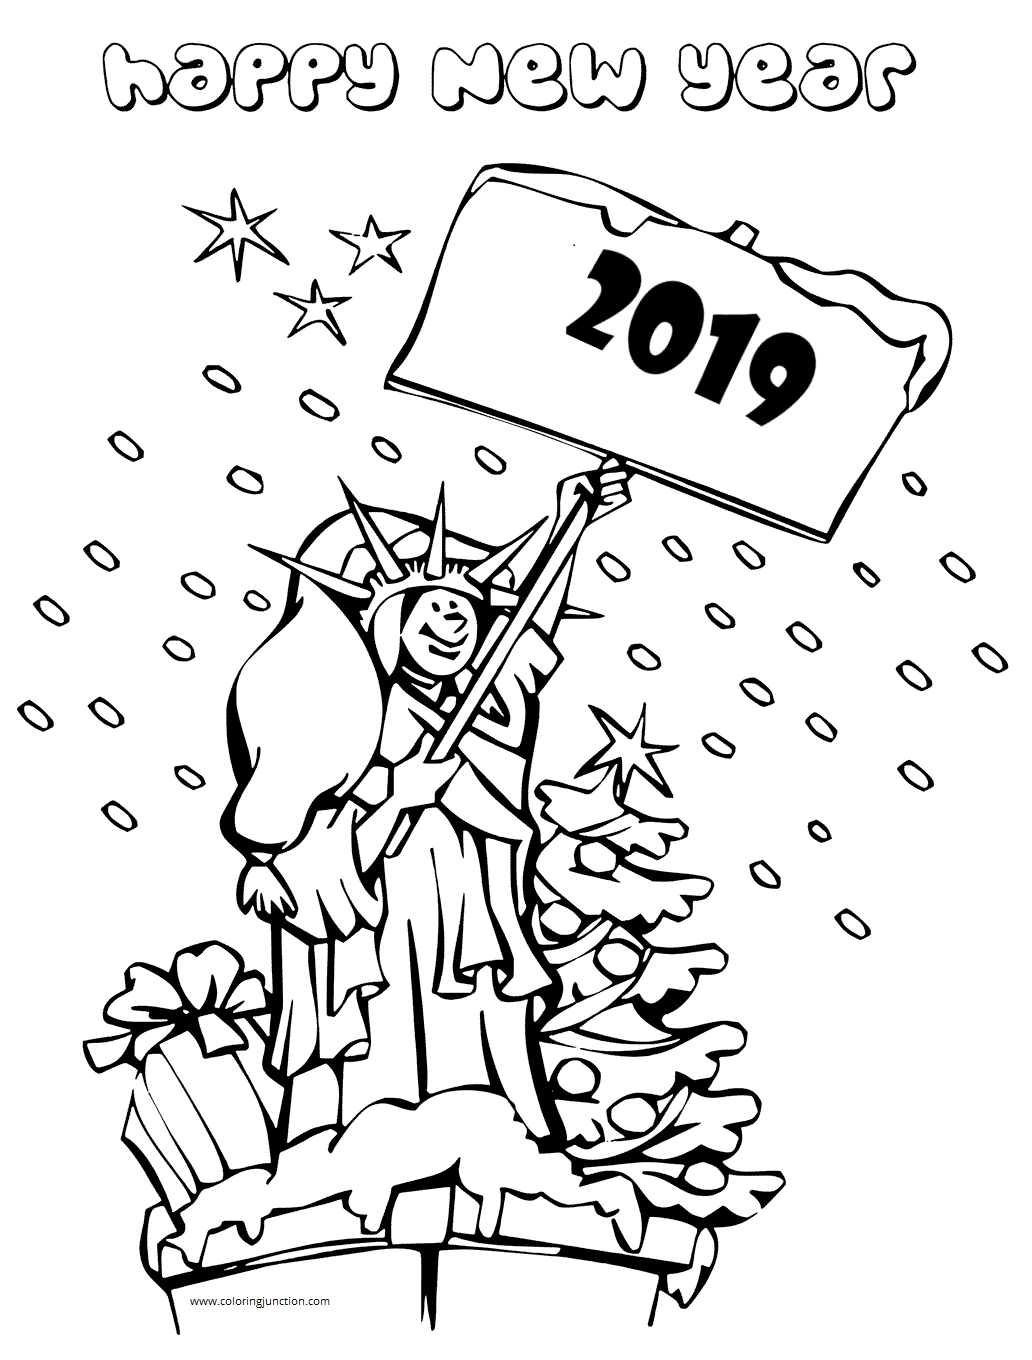 Happy New Year 2019 Coloring Sheets To Print